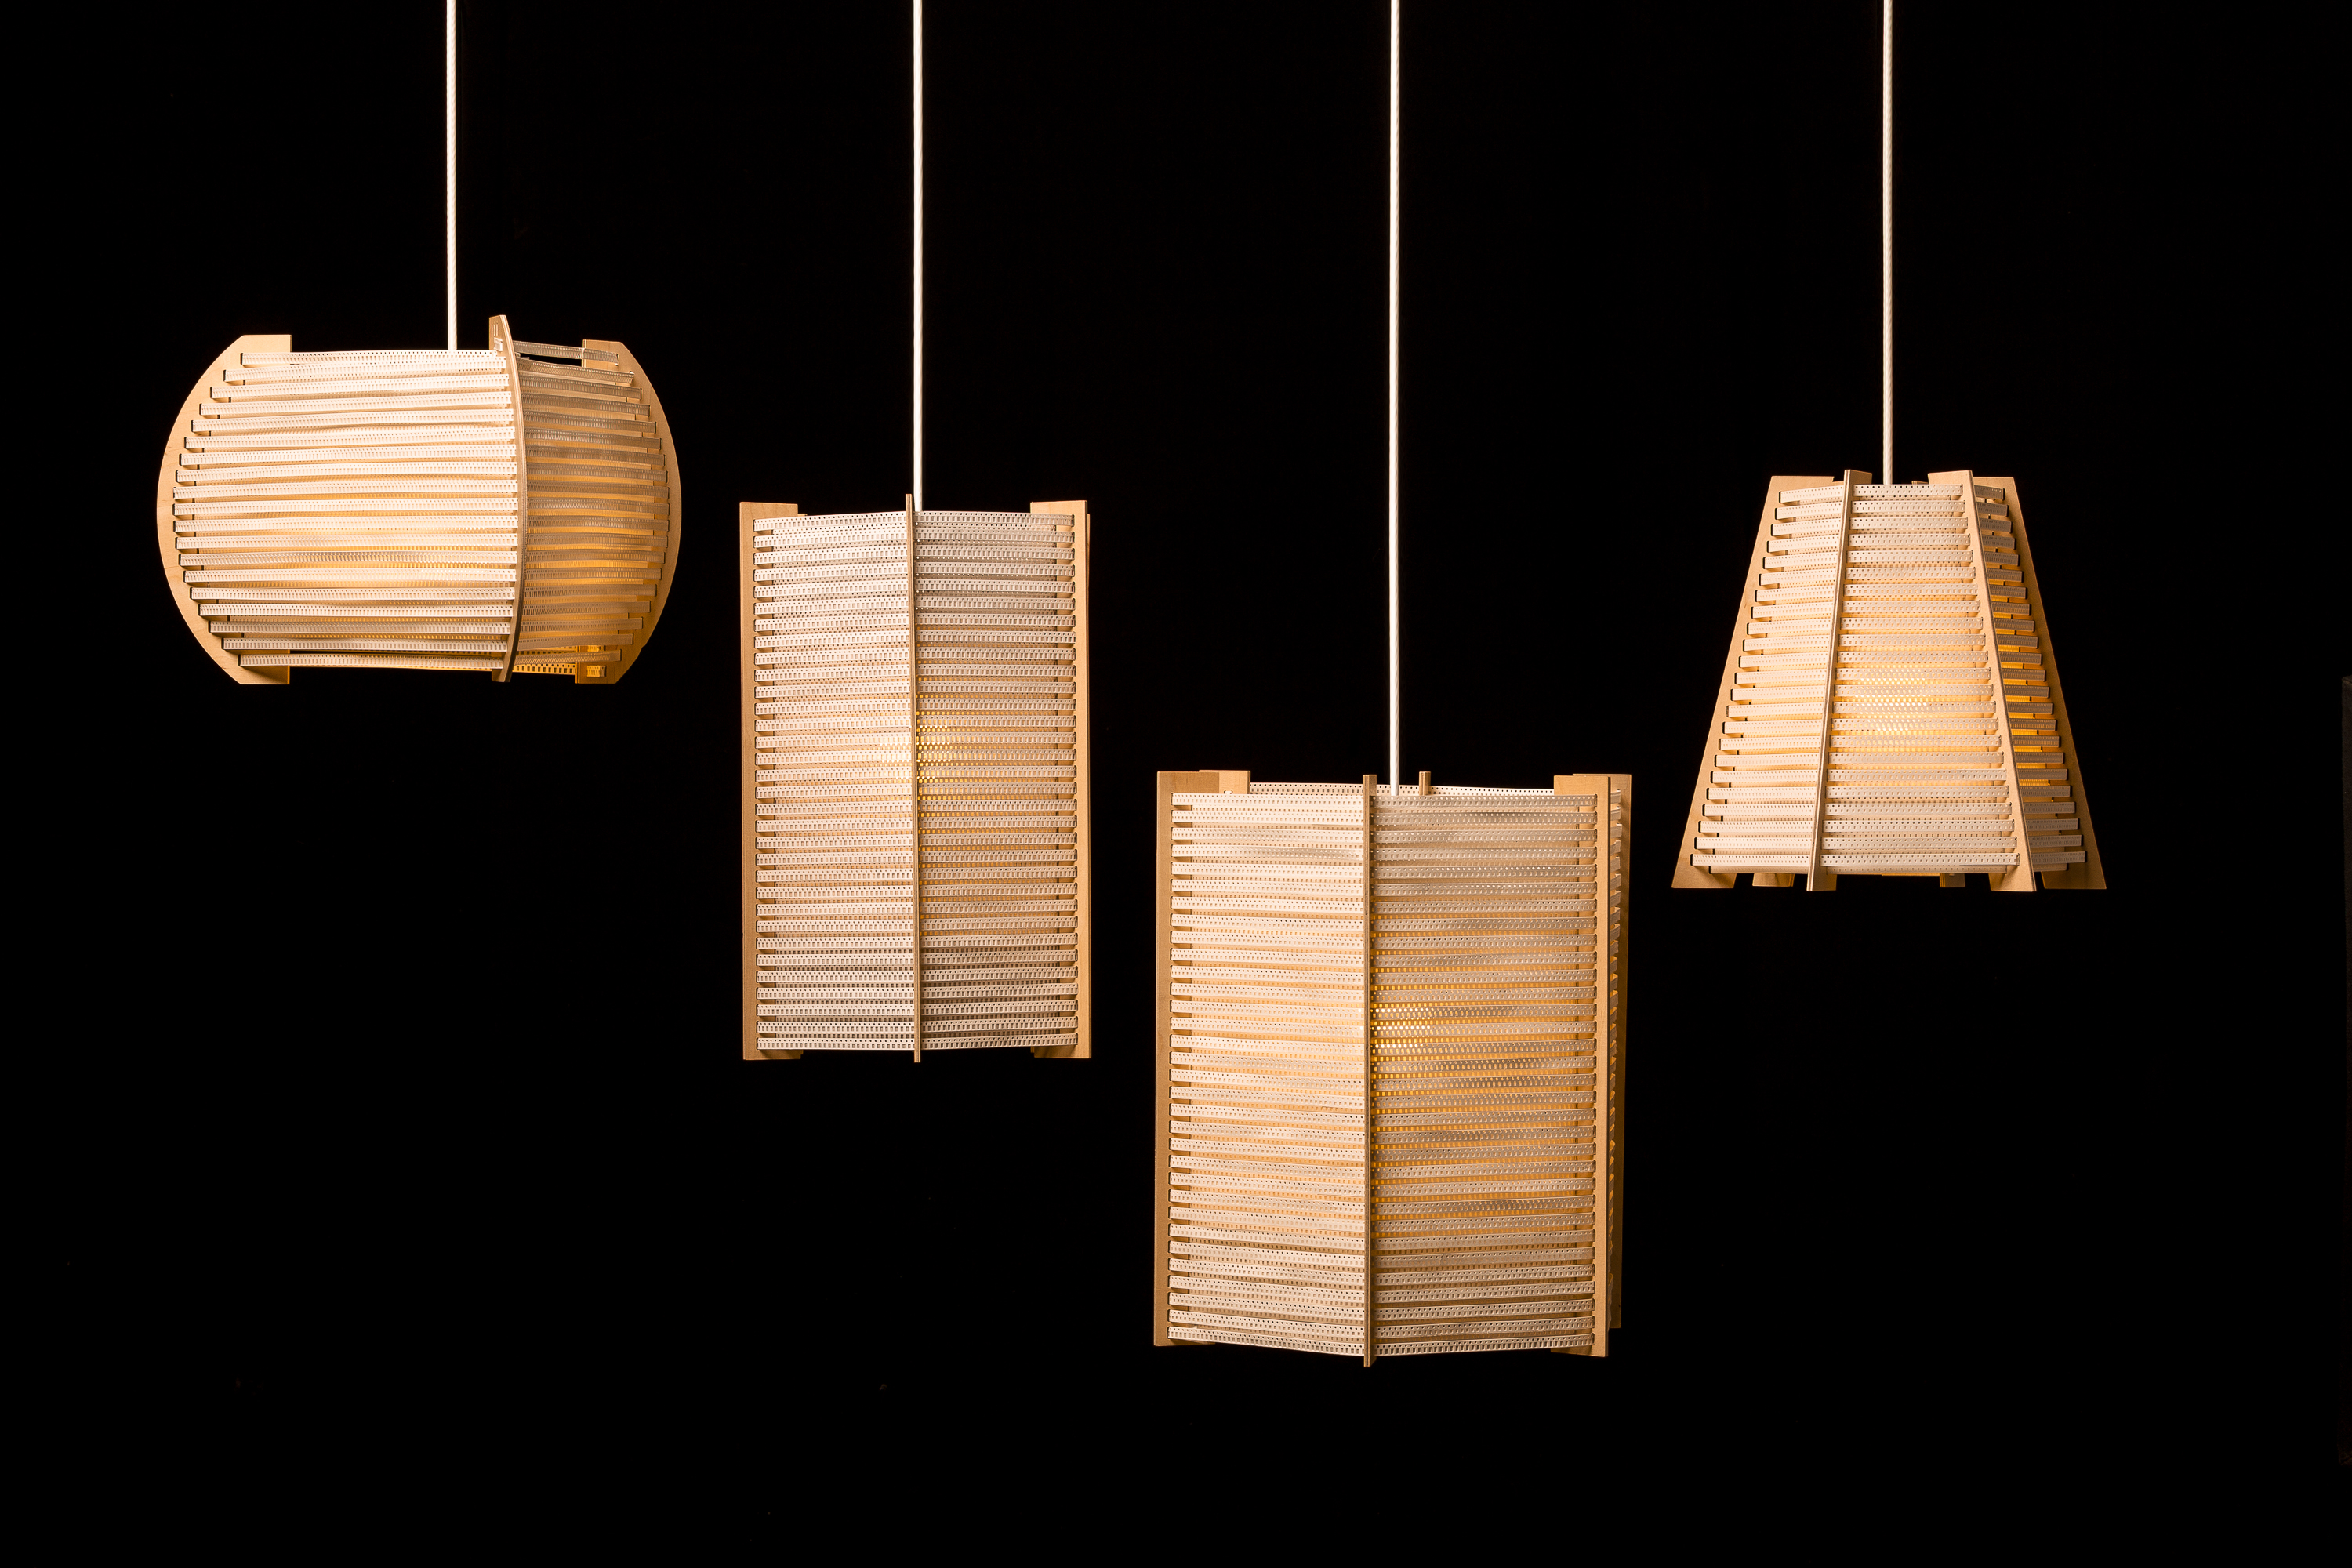 CINTES lamps fill any interior with a warm and diffused light.